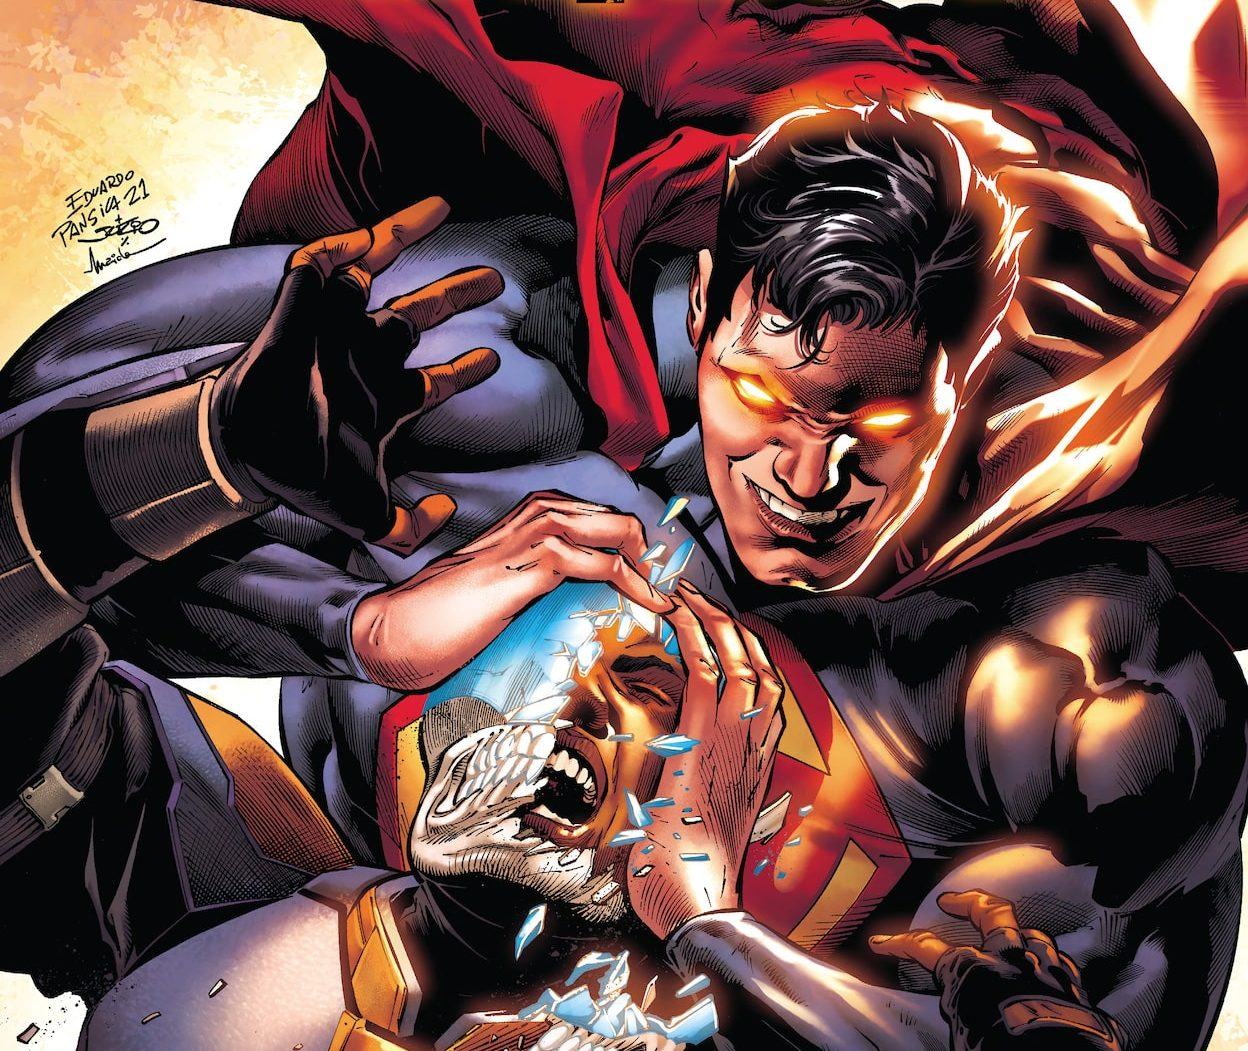 'Suicide Squad' #6 gives more details on the ongoing Superboy mystery